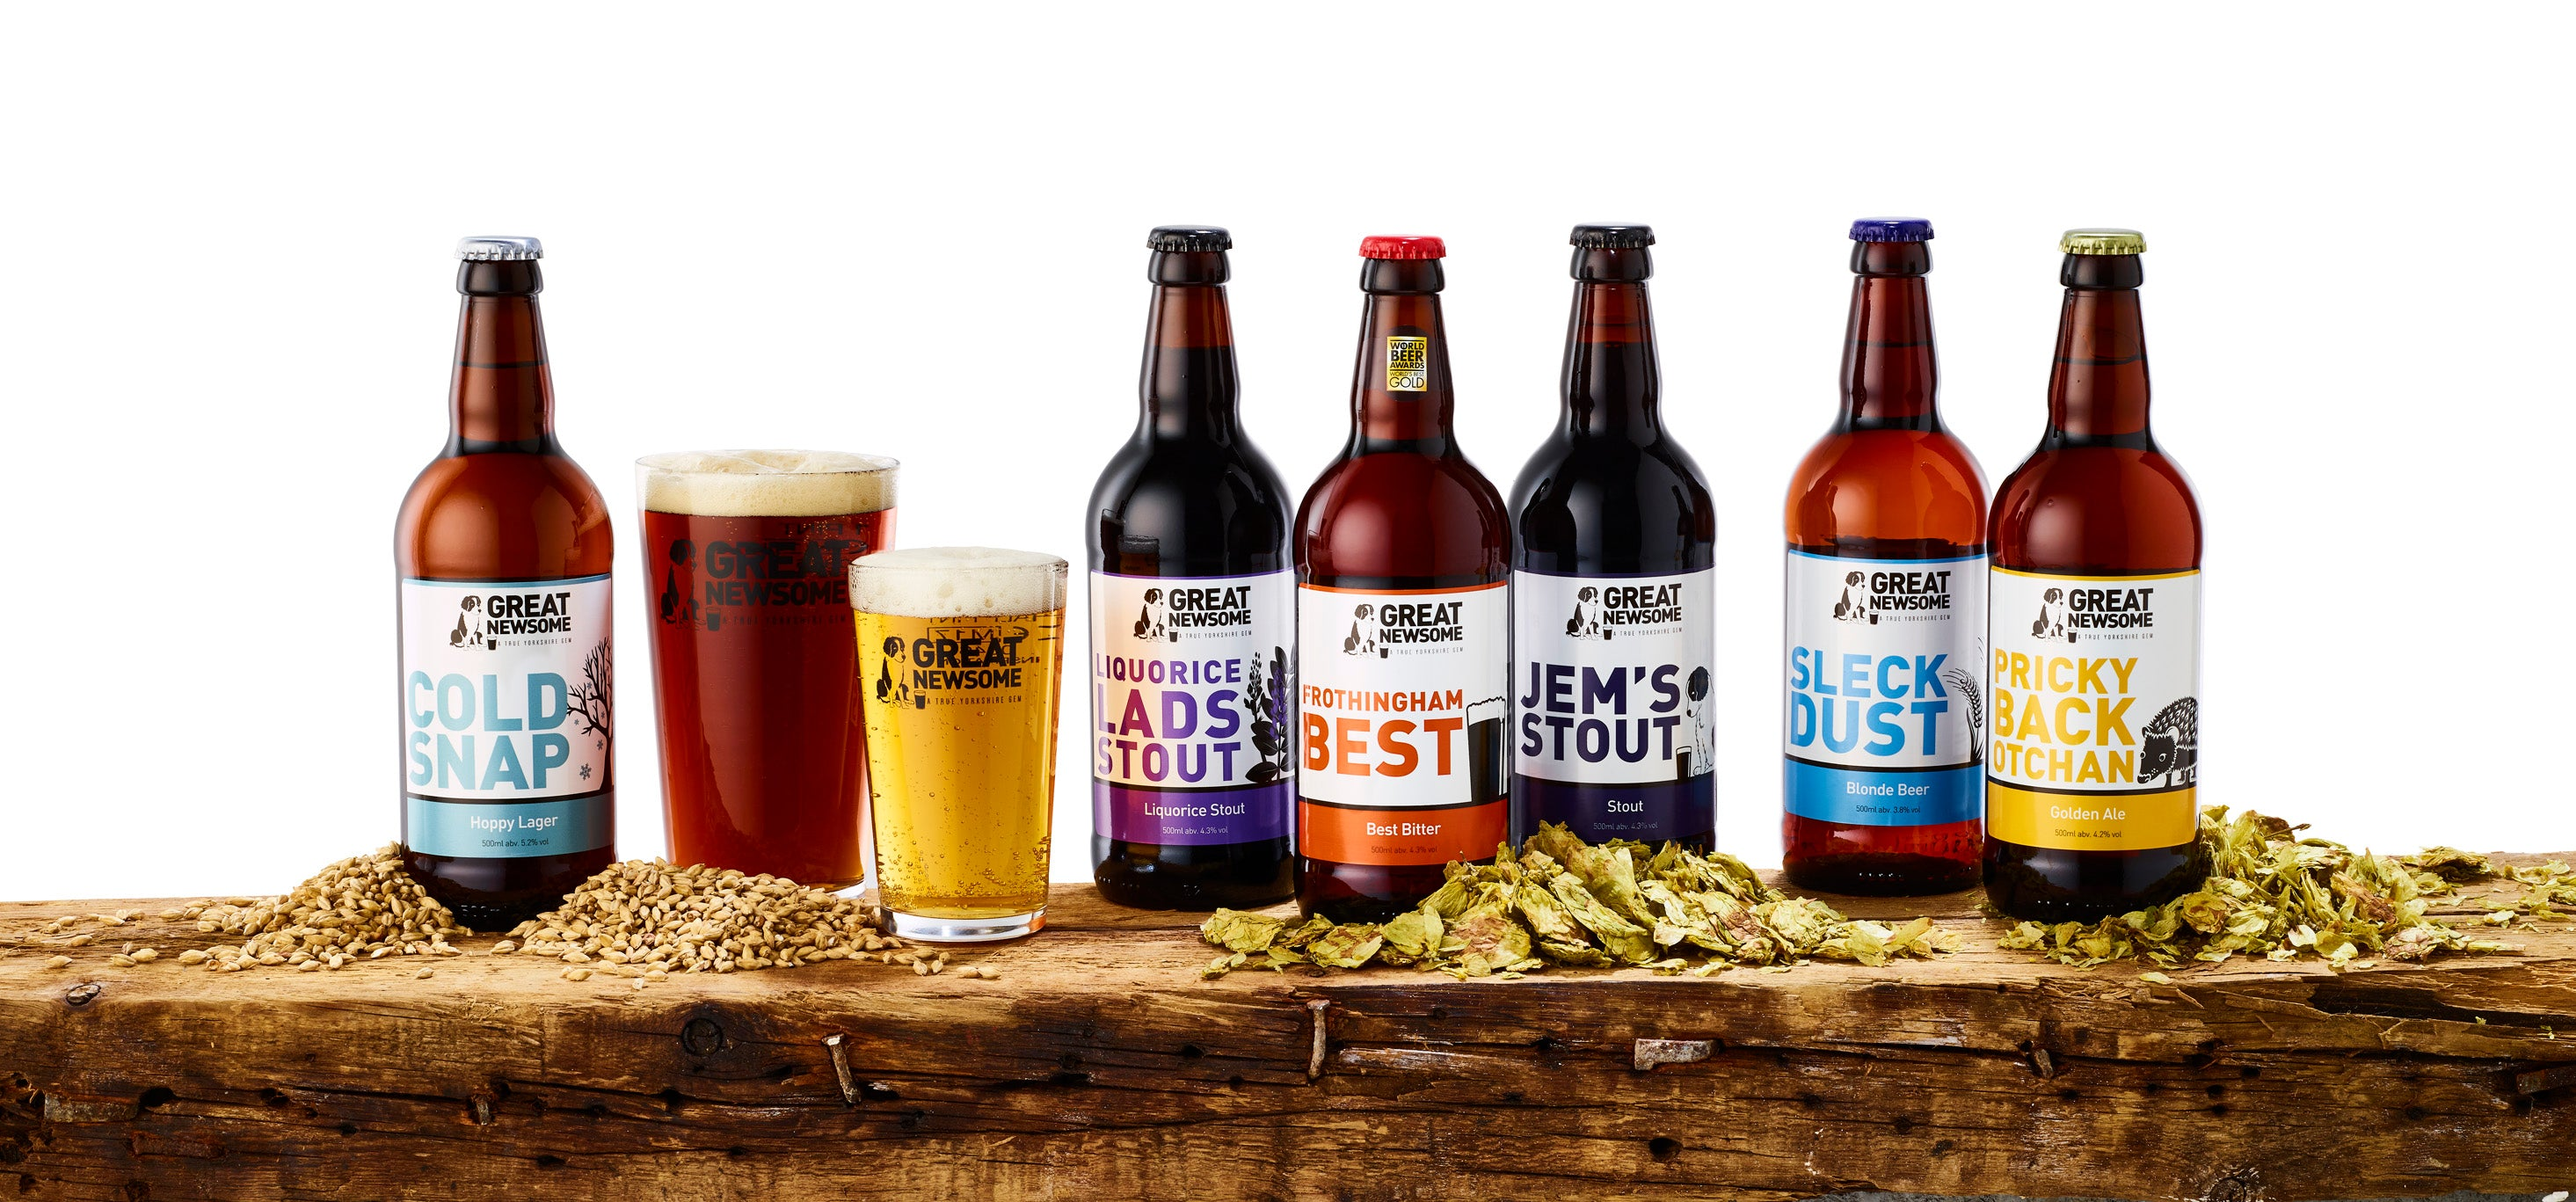 Selection of beers from the Great Newsome Brewery